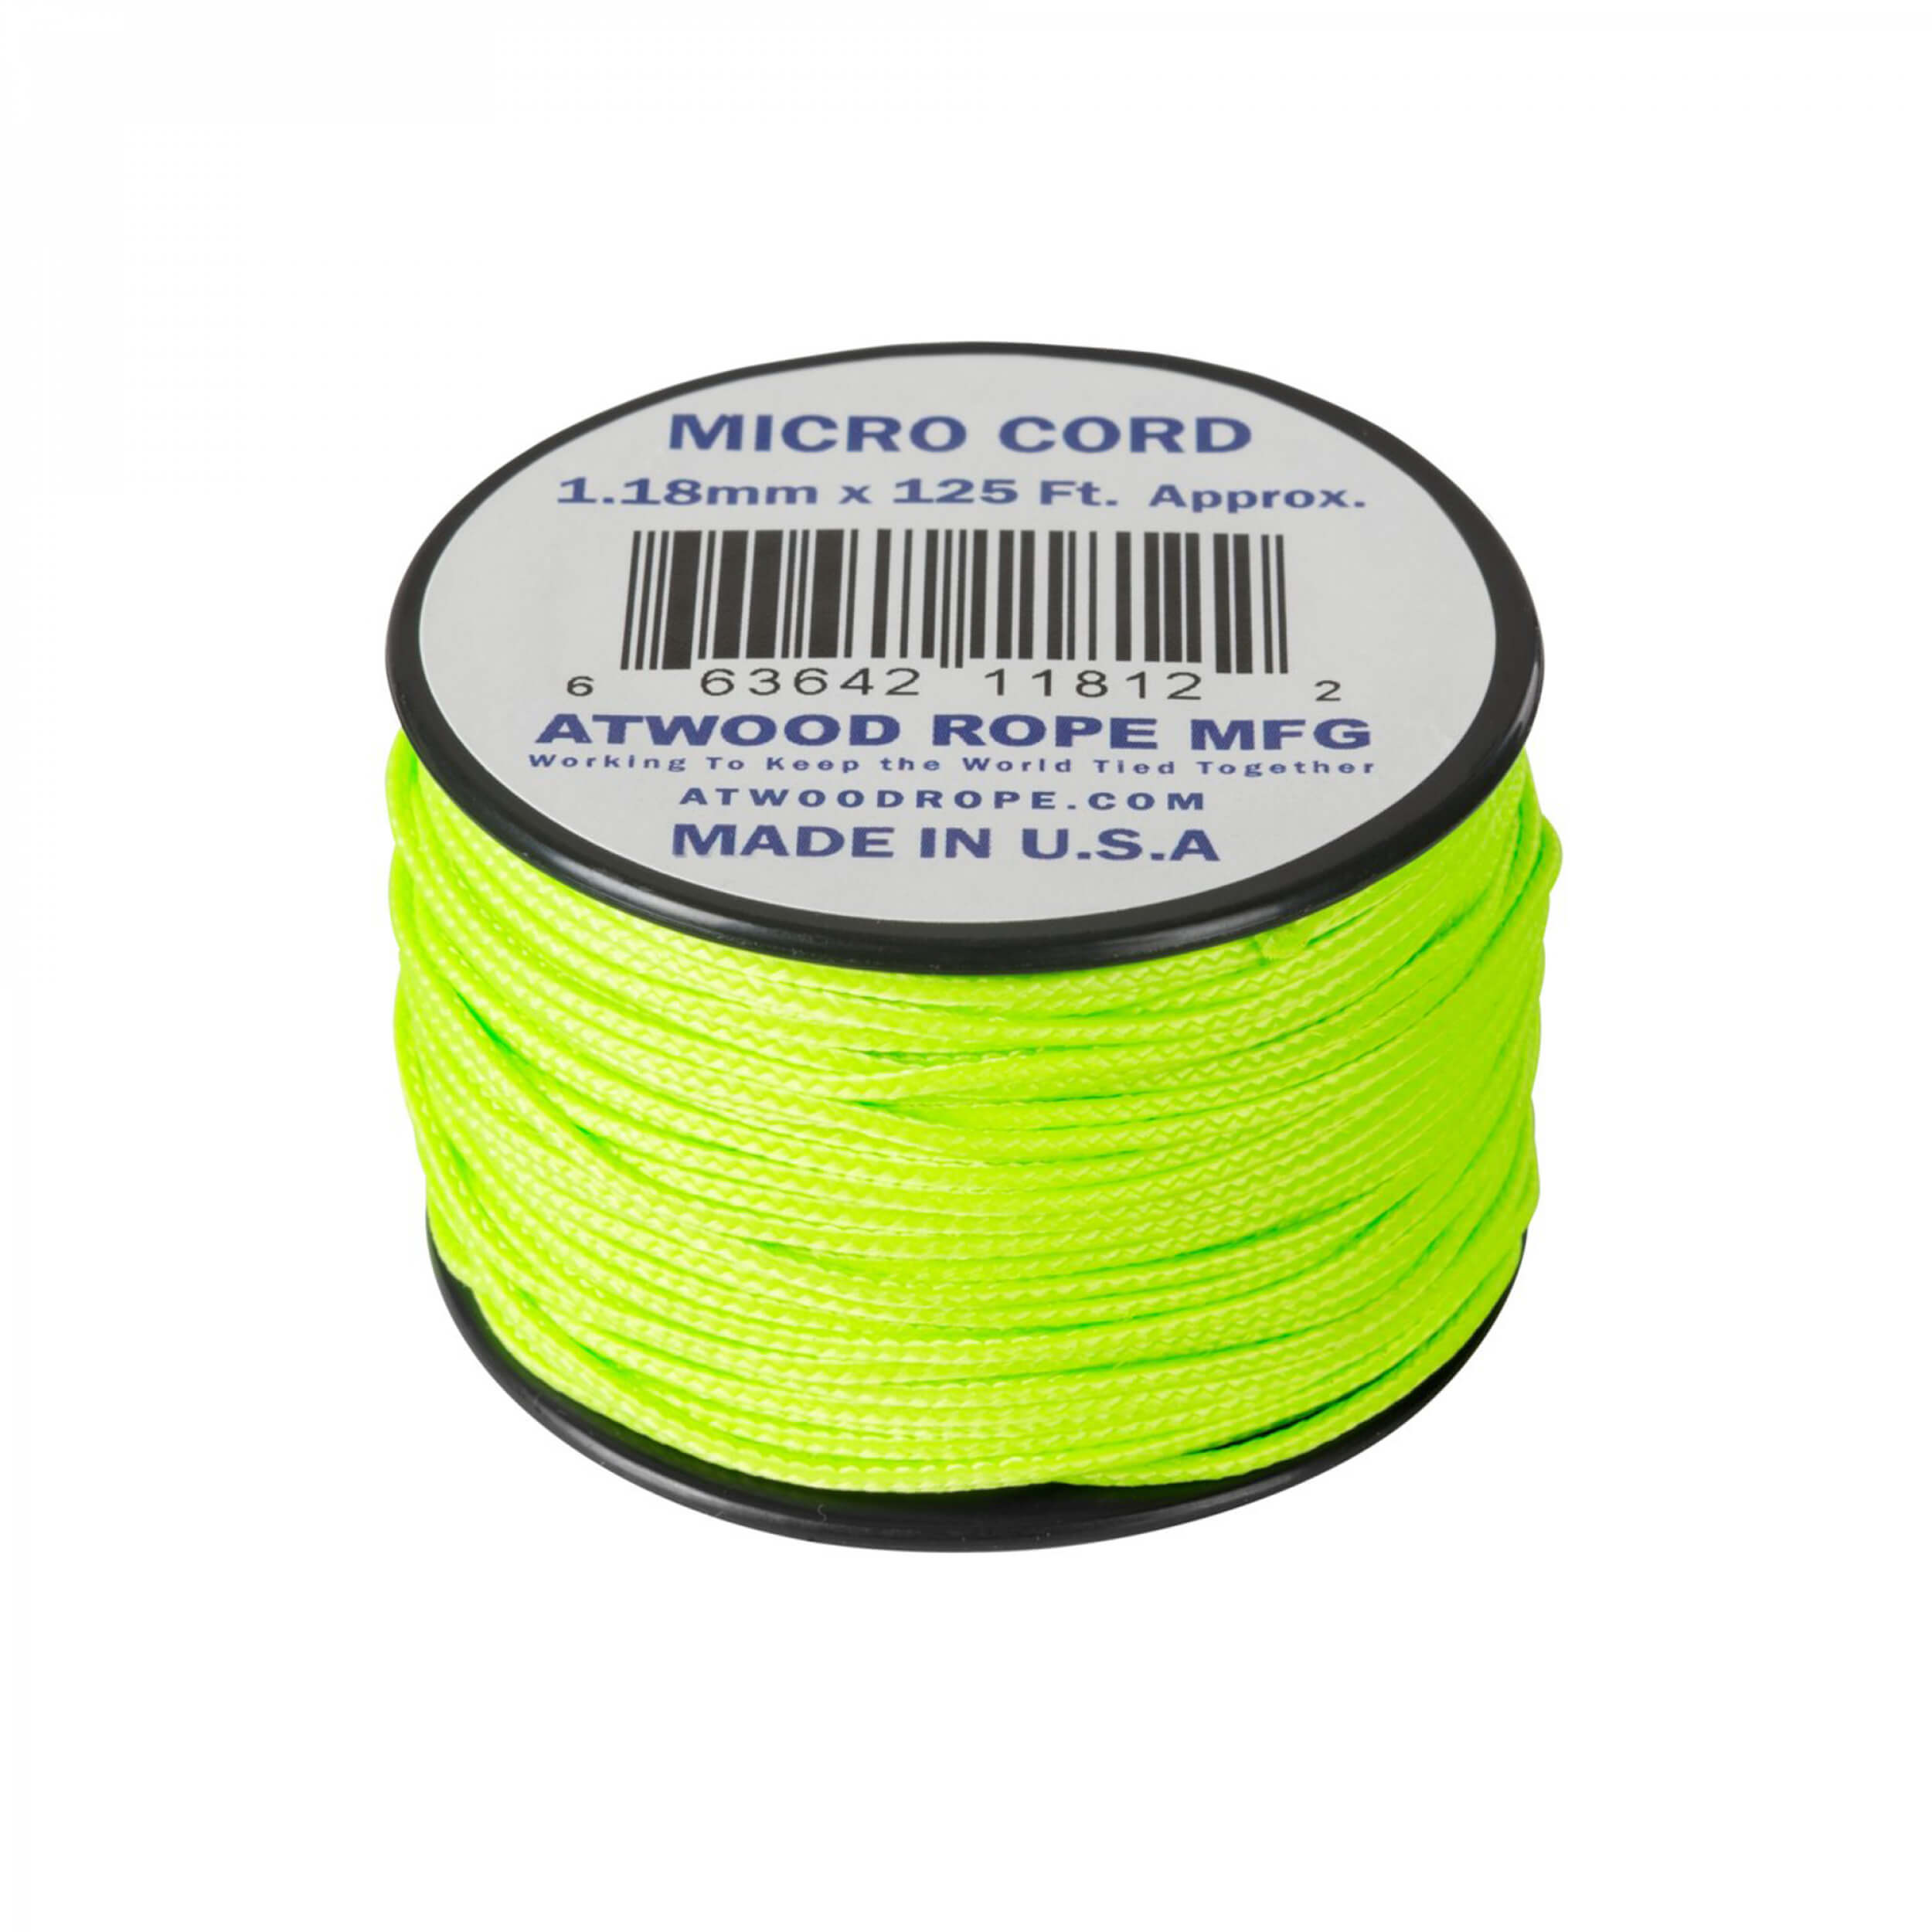 Helikon-Tex Micro Cord (125 FT) neon green